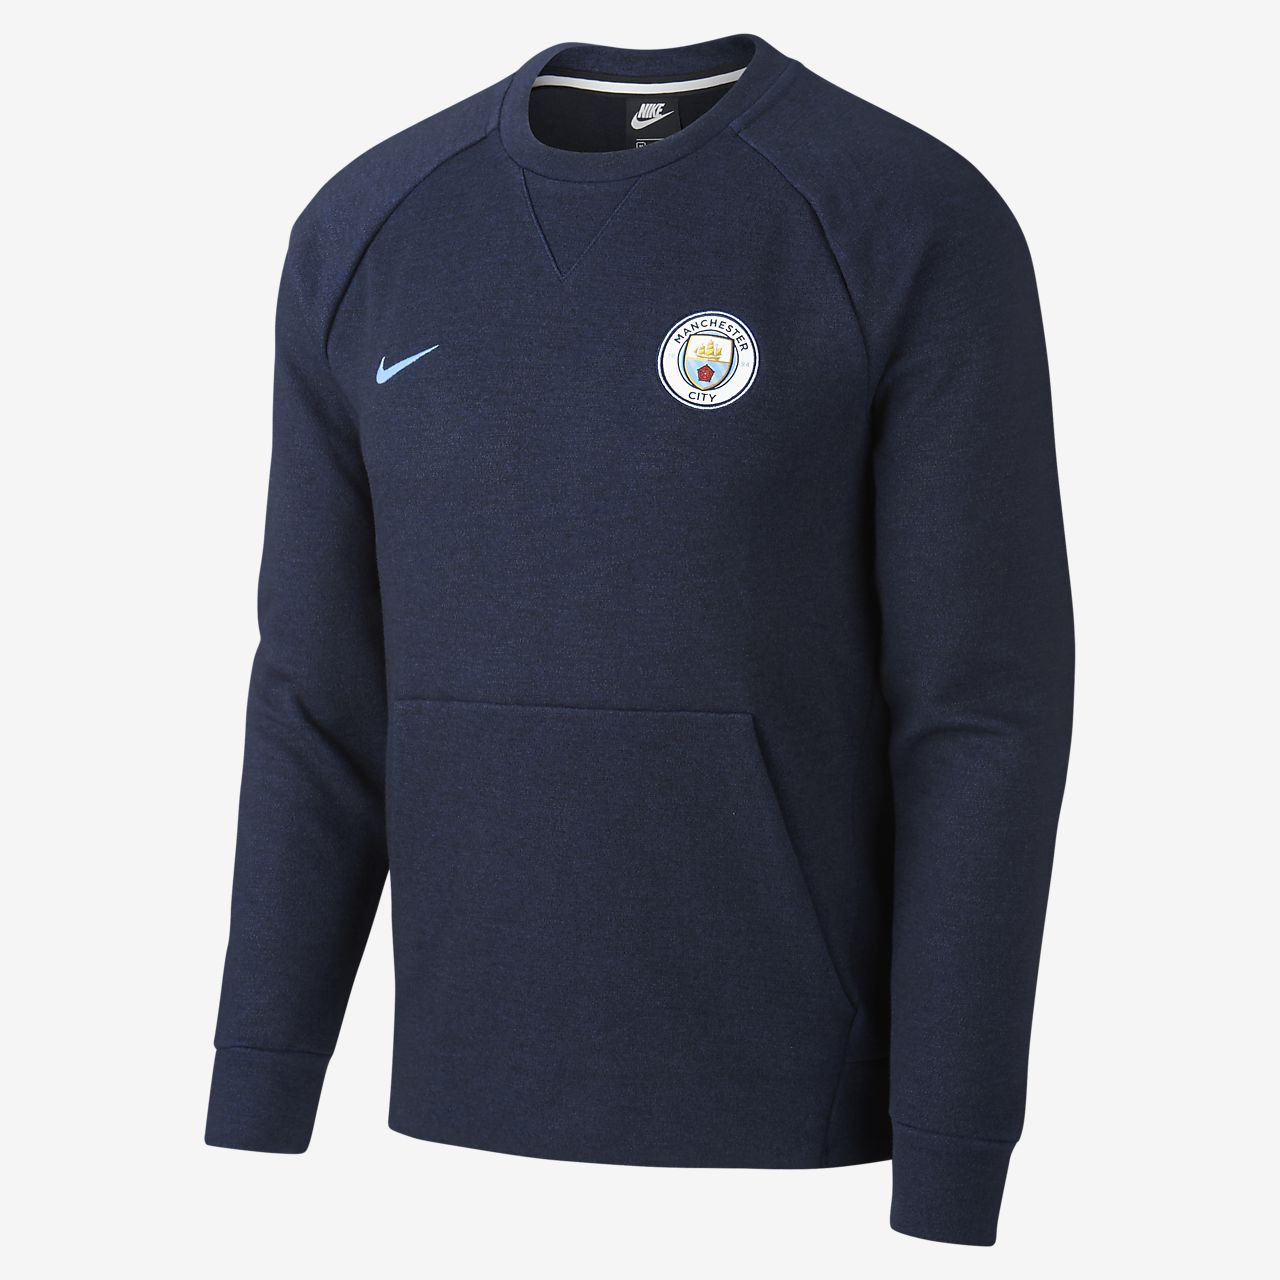 2d4359ac7 Manchester City FC Men's Long-Sleeve Crew. Nike.com AU